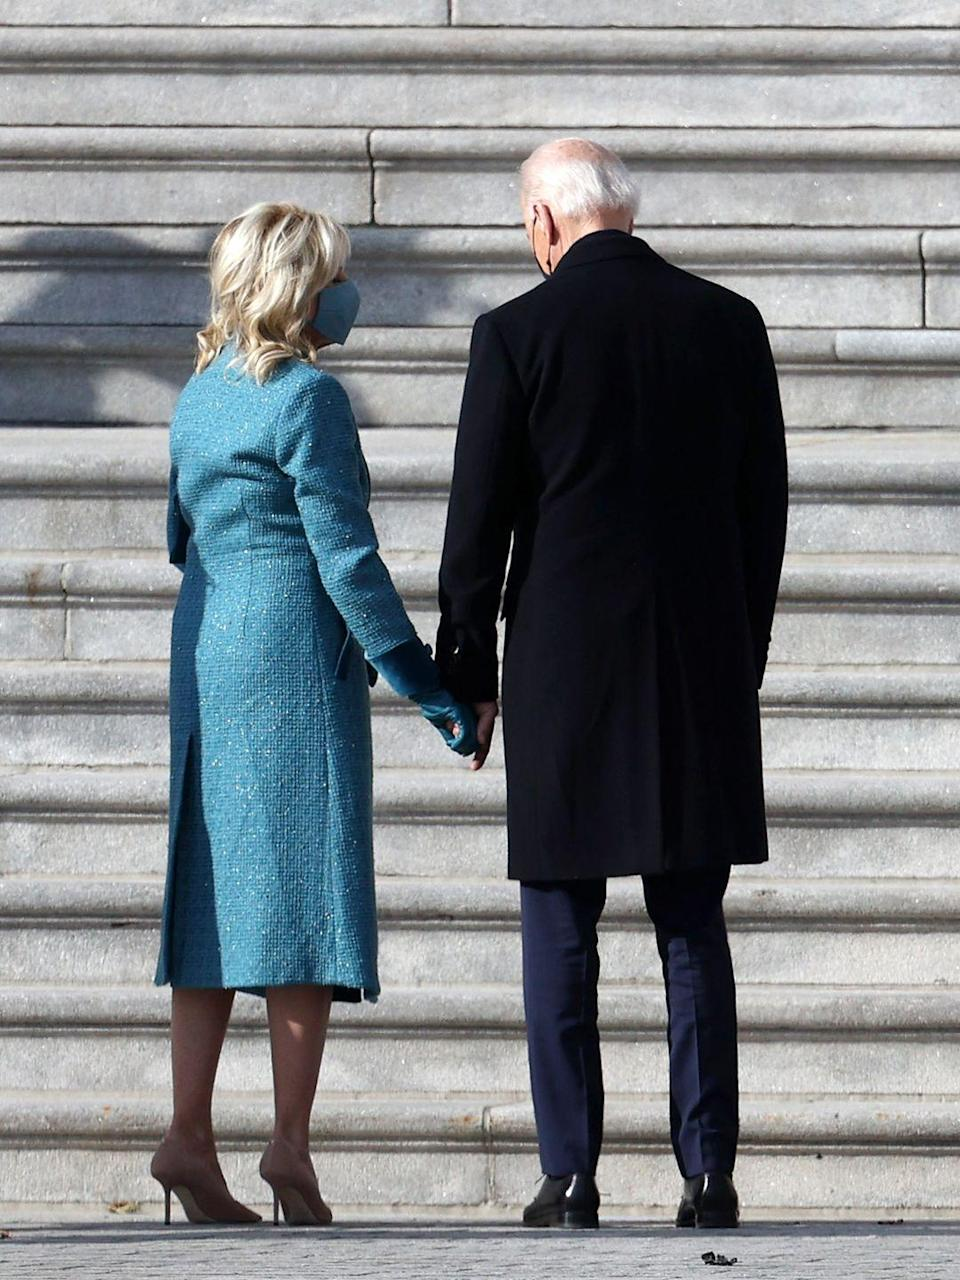 <p>President-elect Joe Biden and Dr. Jill Biden sharing a moment together on the East Front of the U.S. Capitol</p>